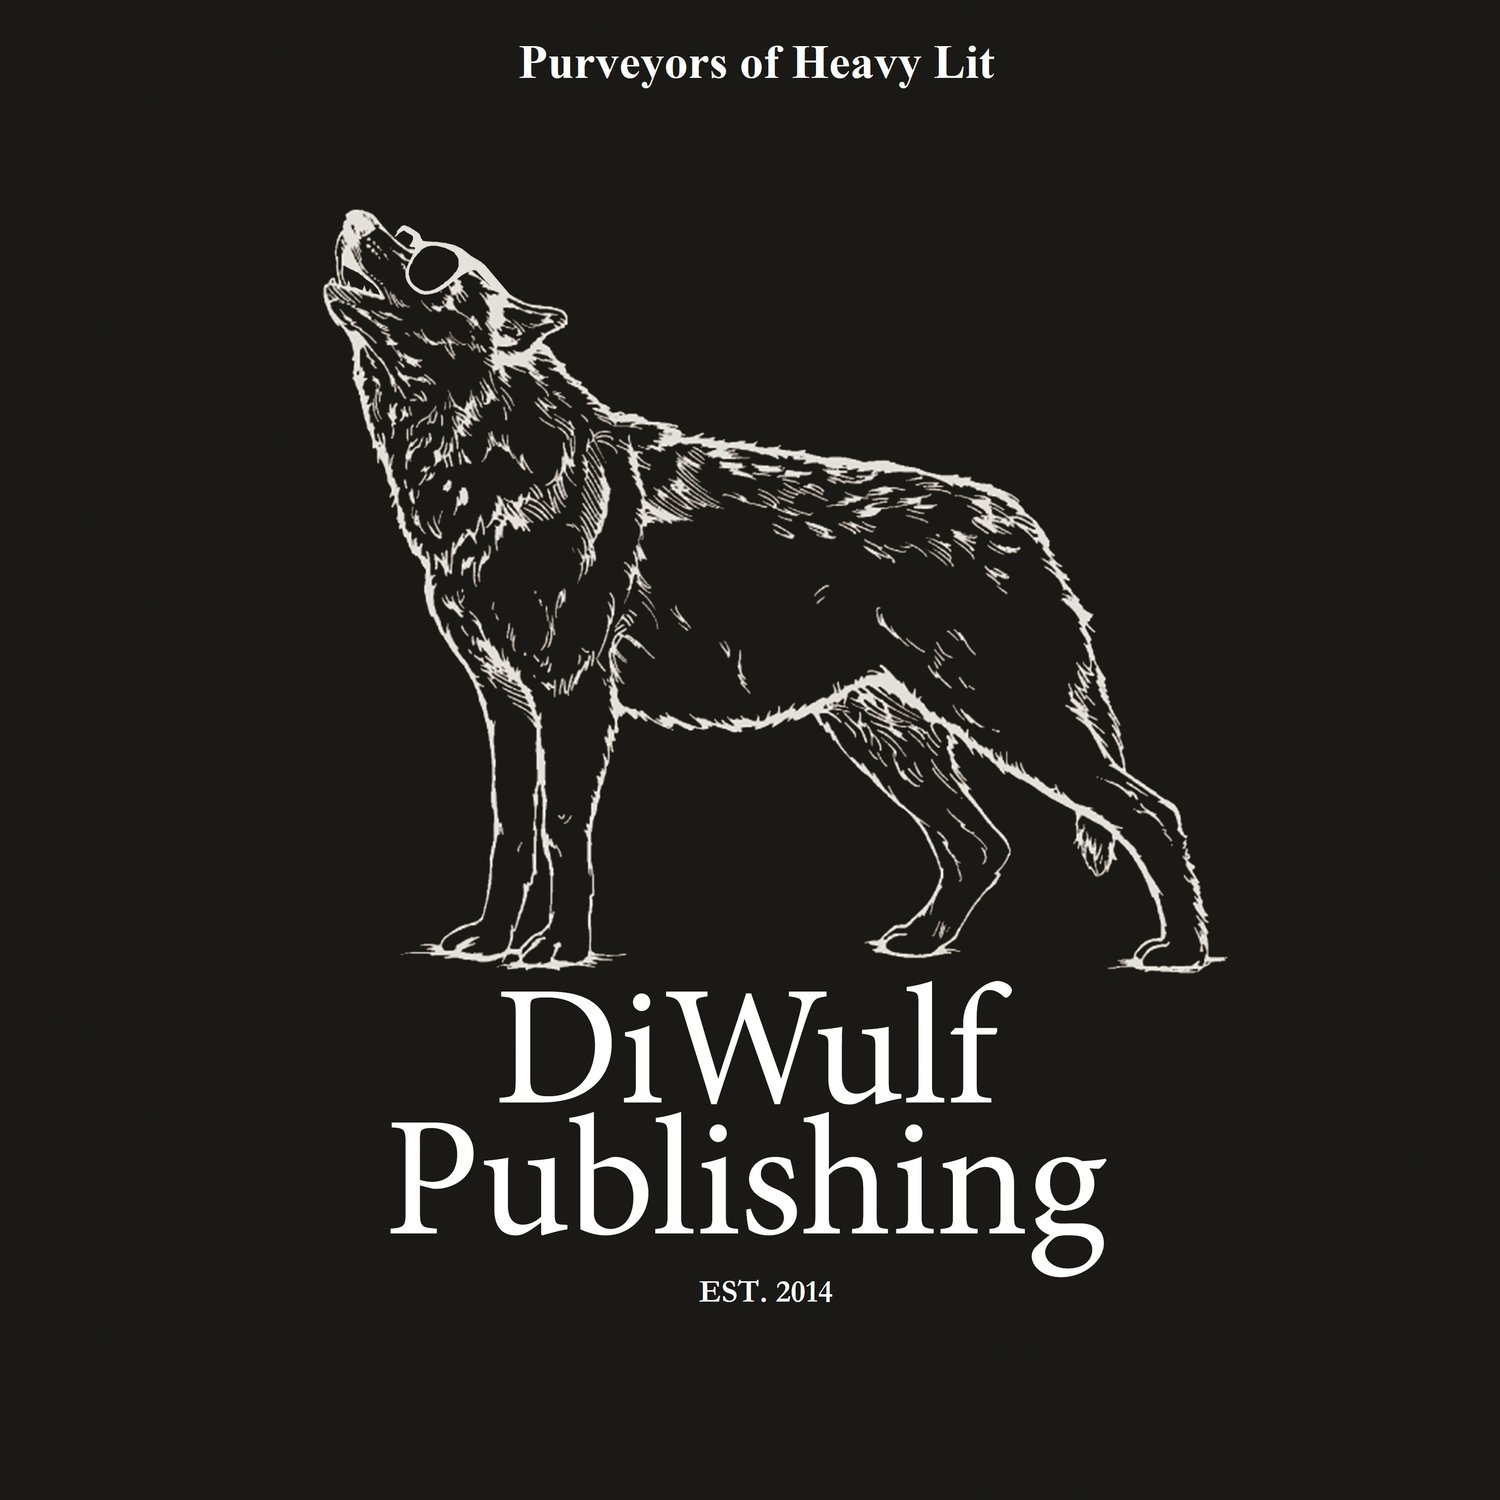 DiWulf Publishing House